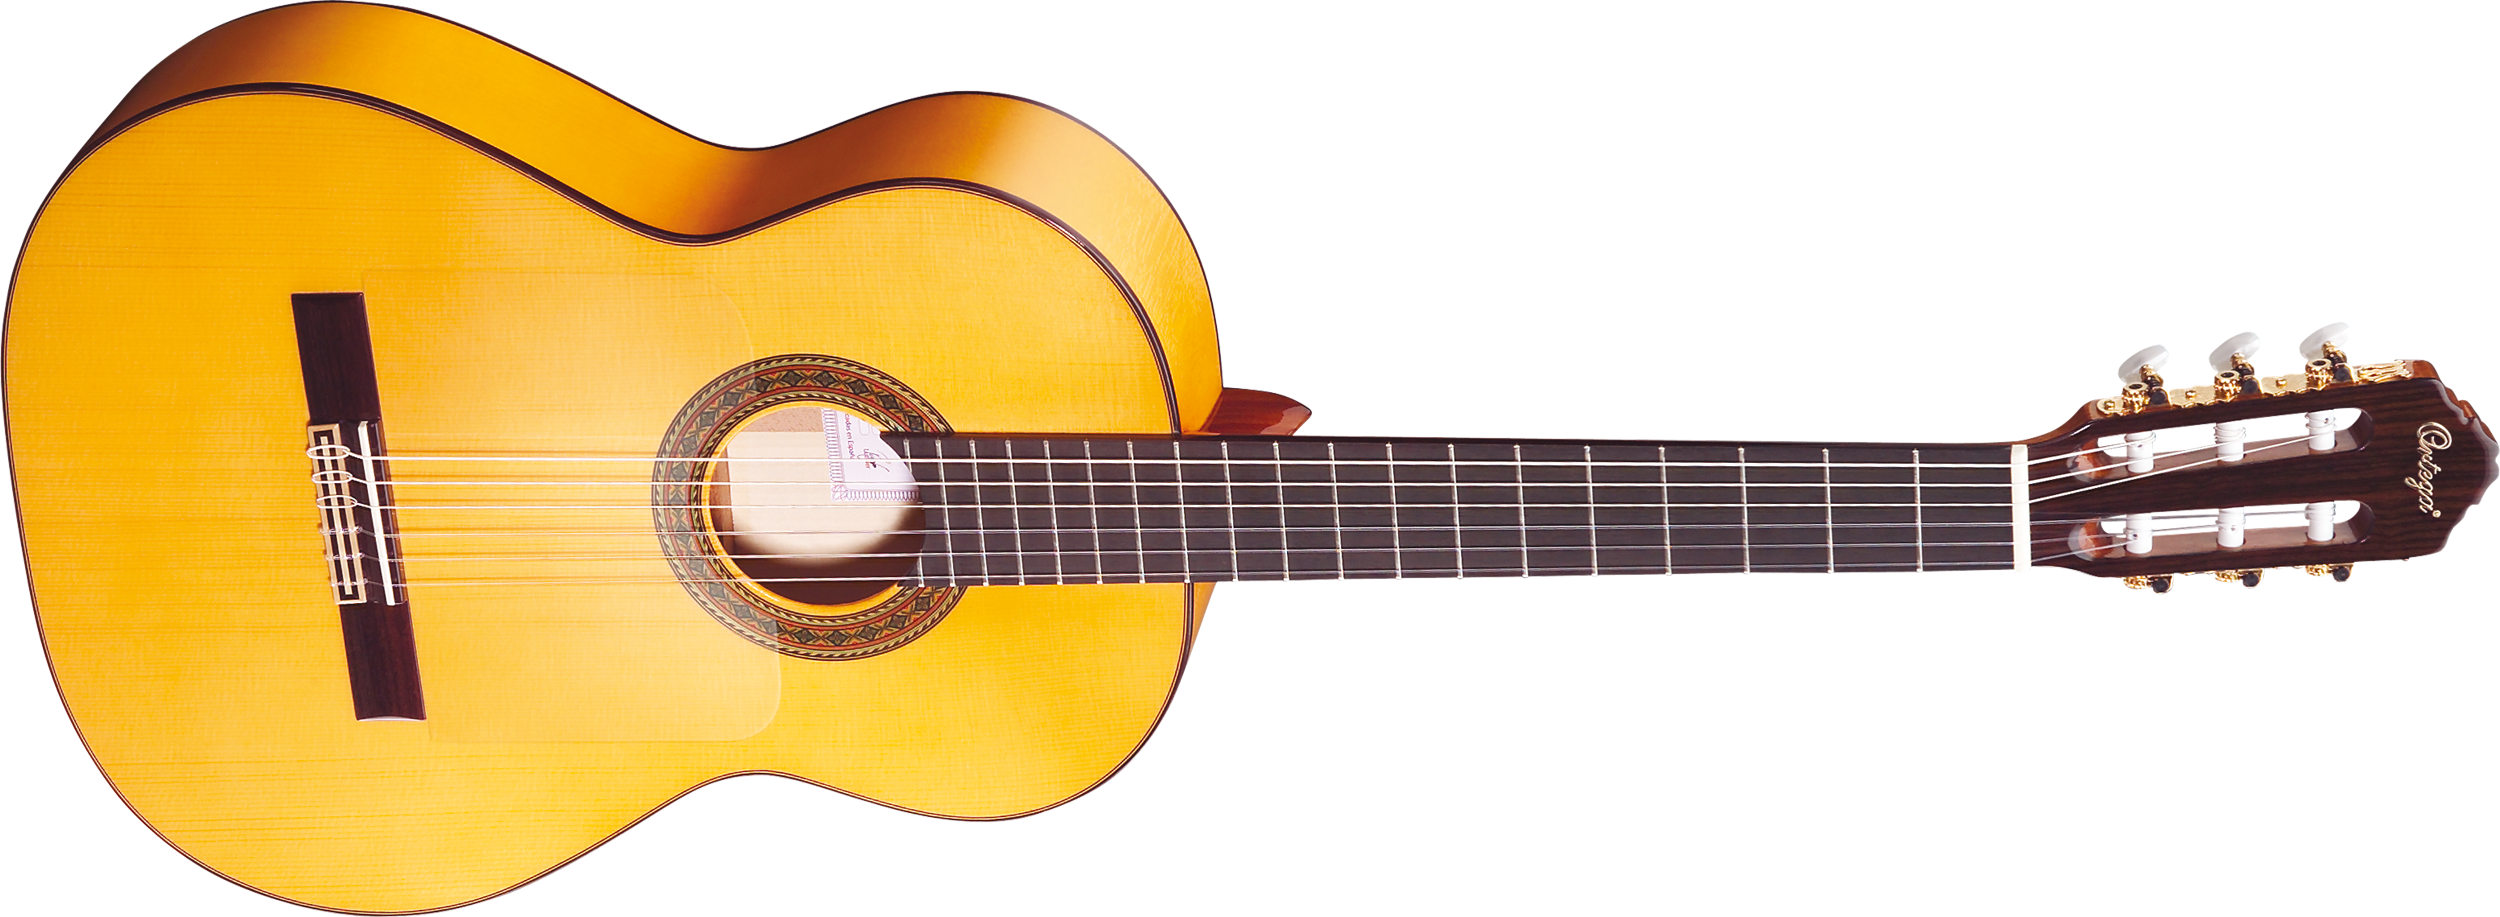 Free download best on. Guitar clipart blue object